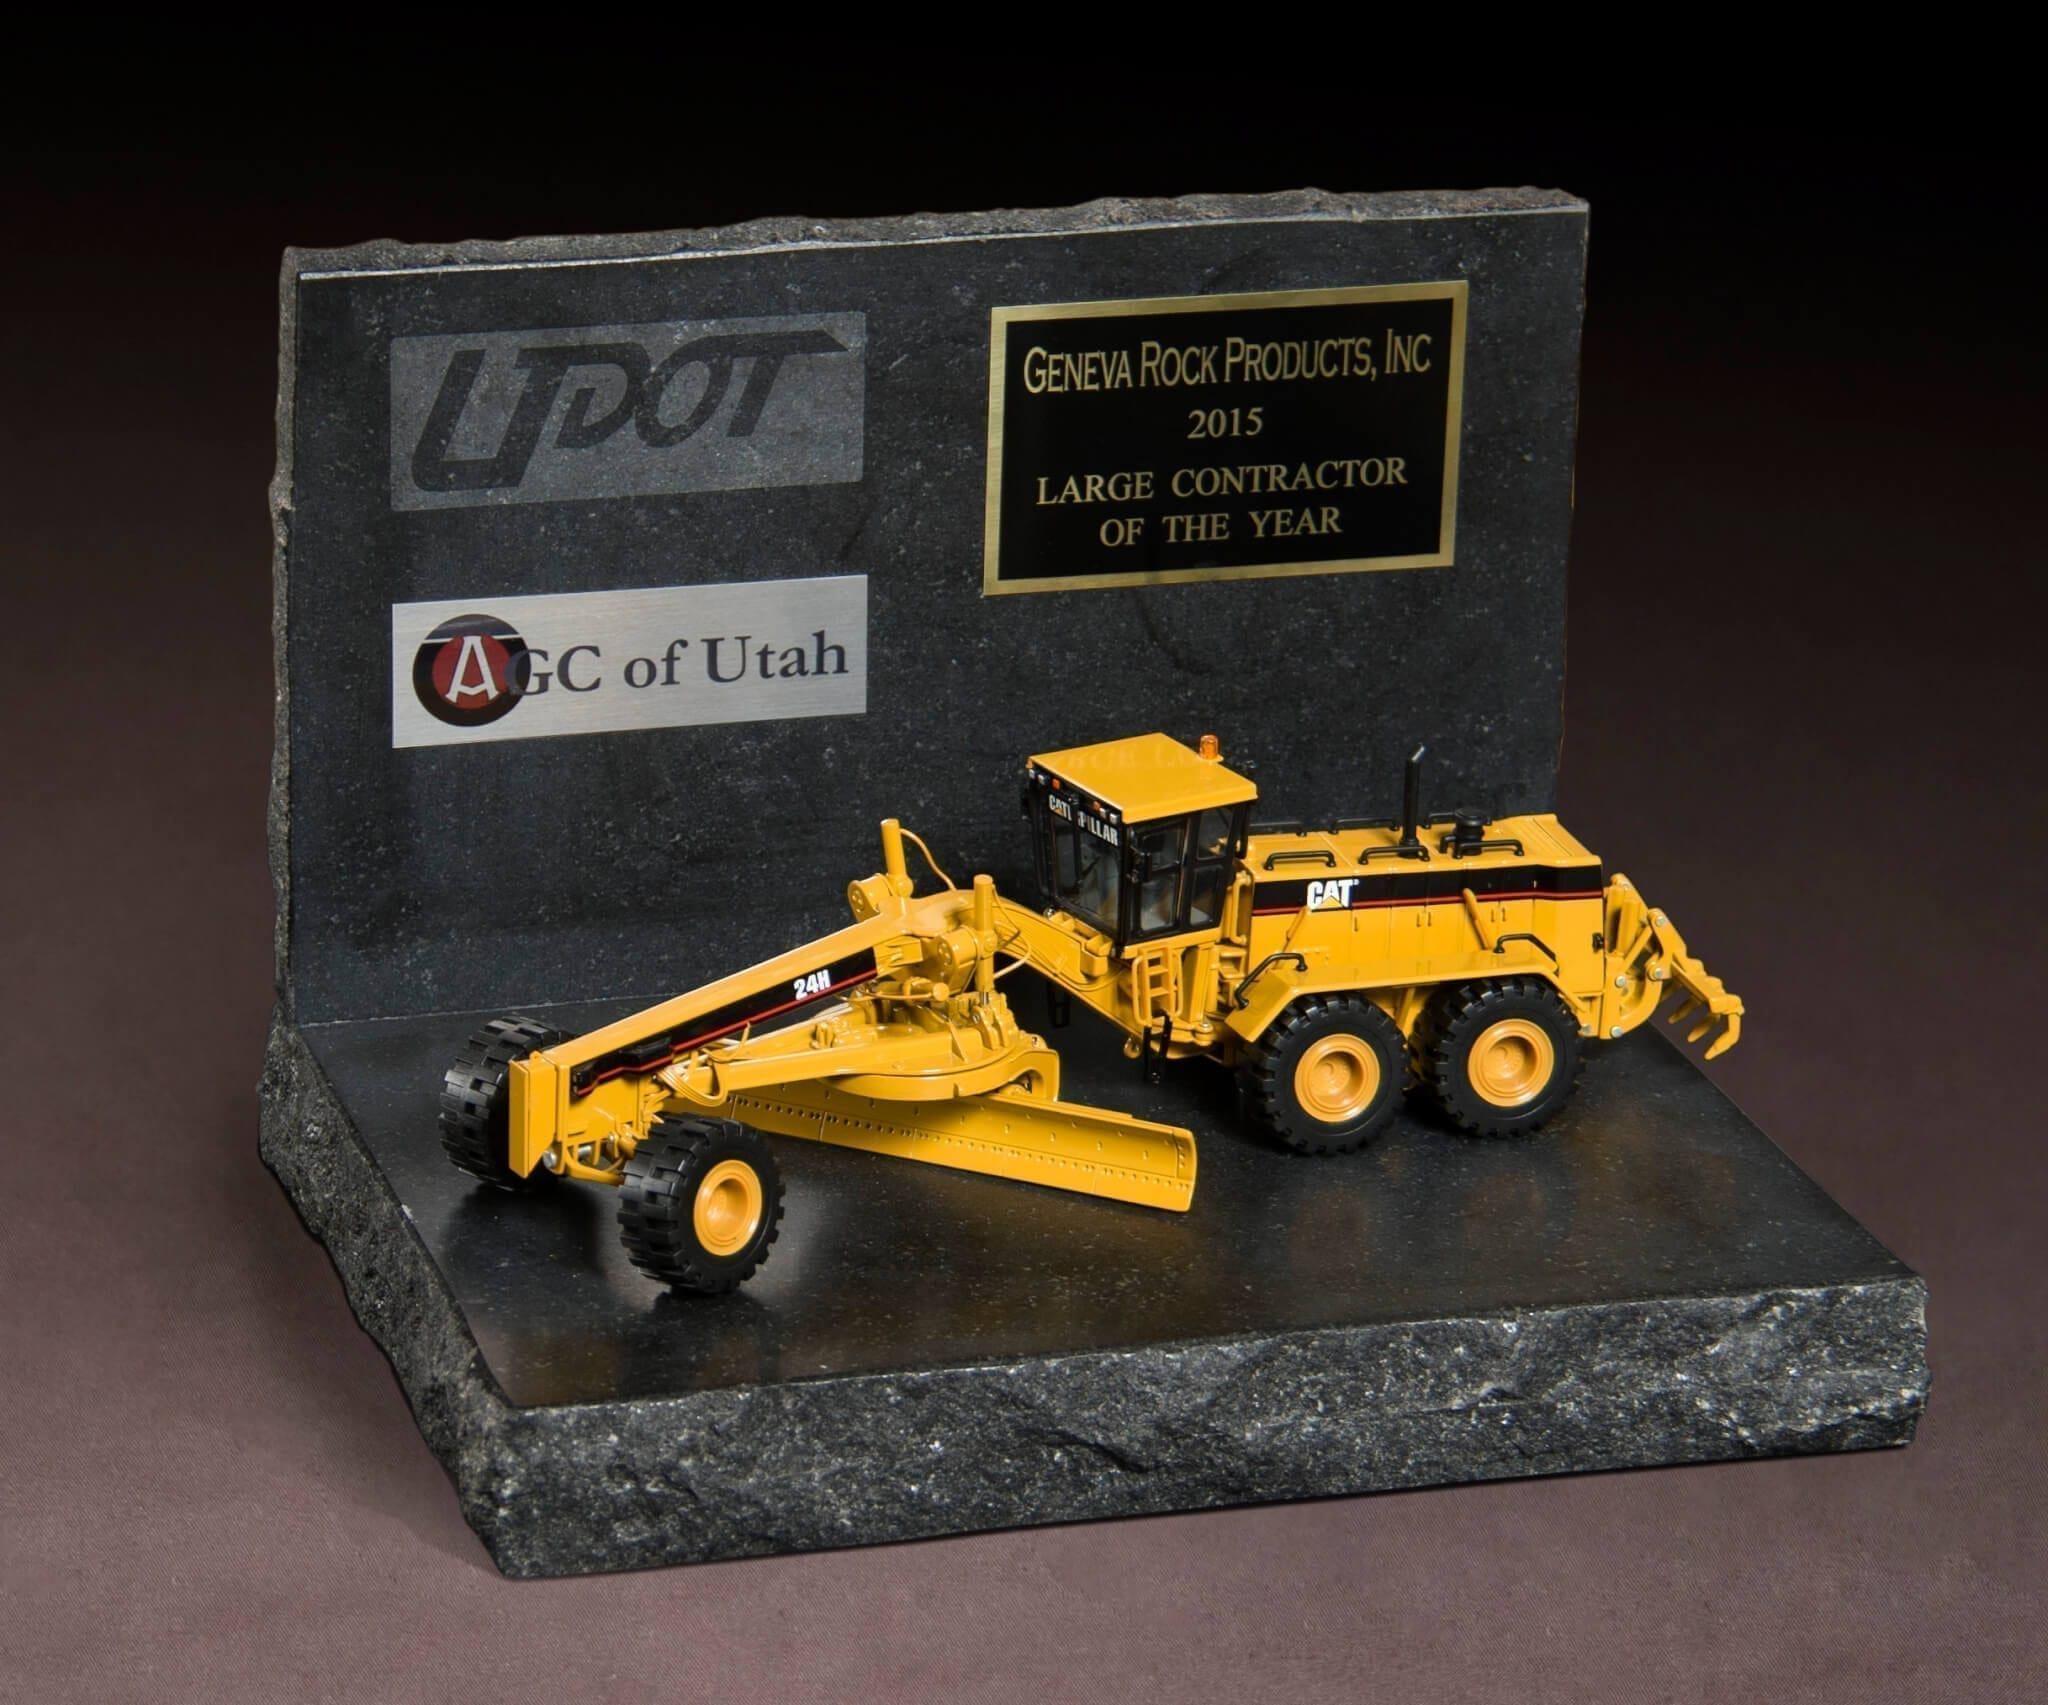 UDOT & AGC of Utah 2015 Large Contractor of the Year